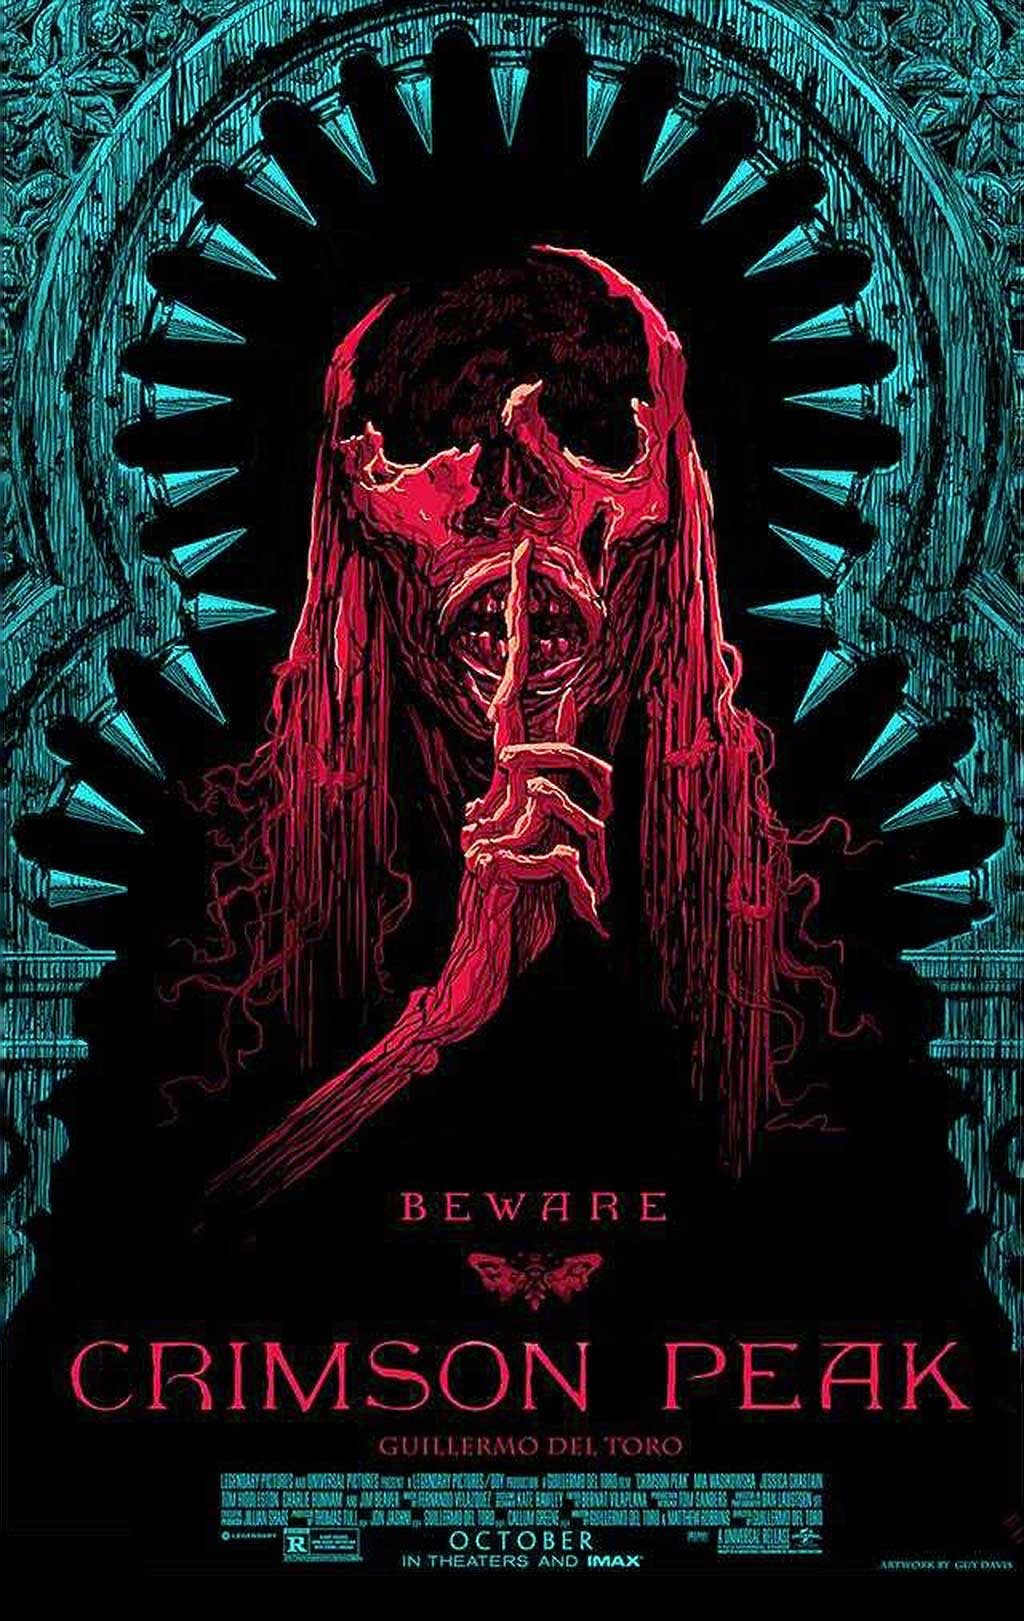 Top 10 Gruesome Movie Posters for 2015 - Gruesome Magazine